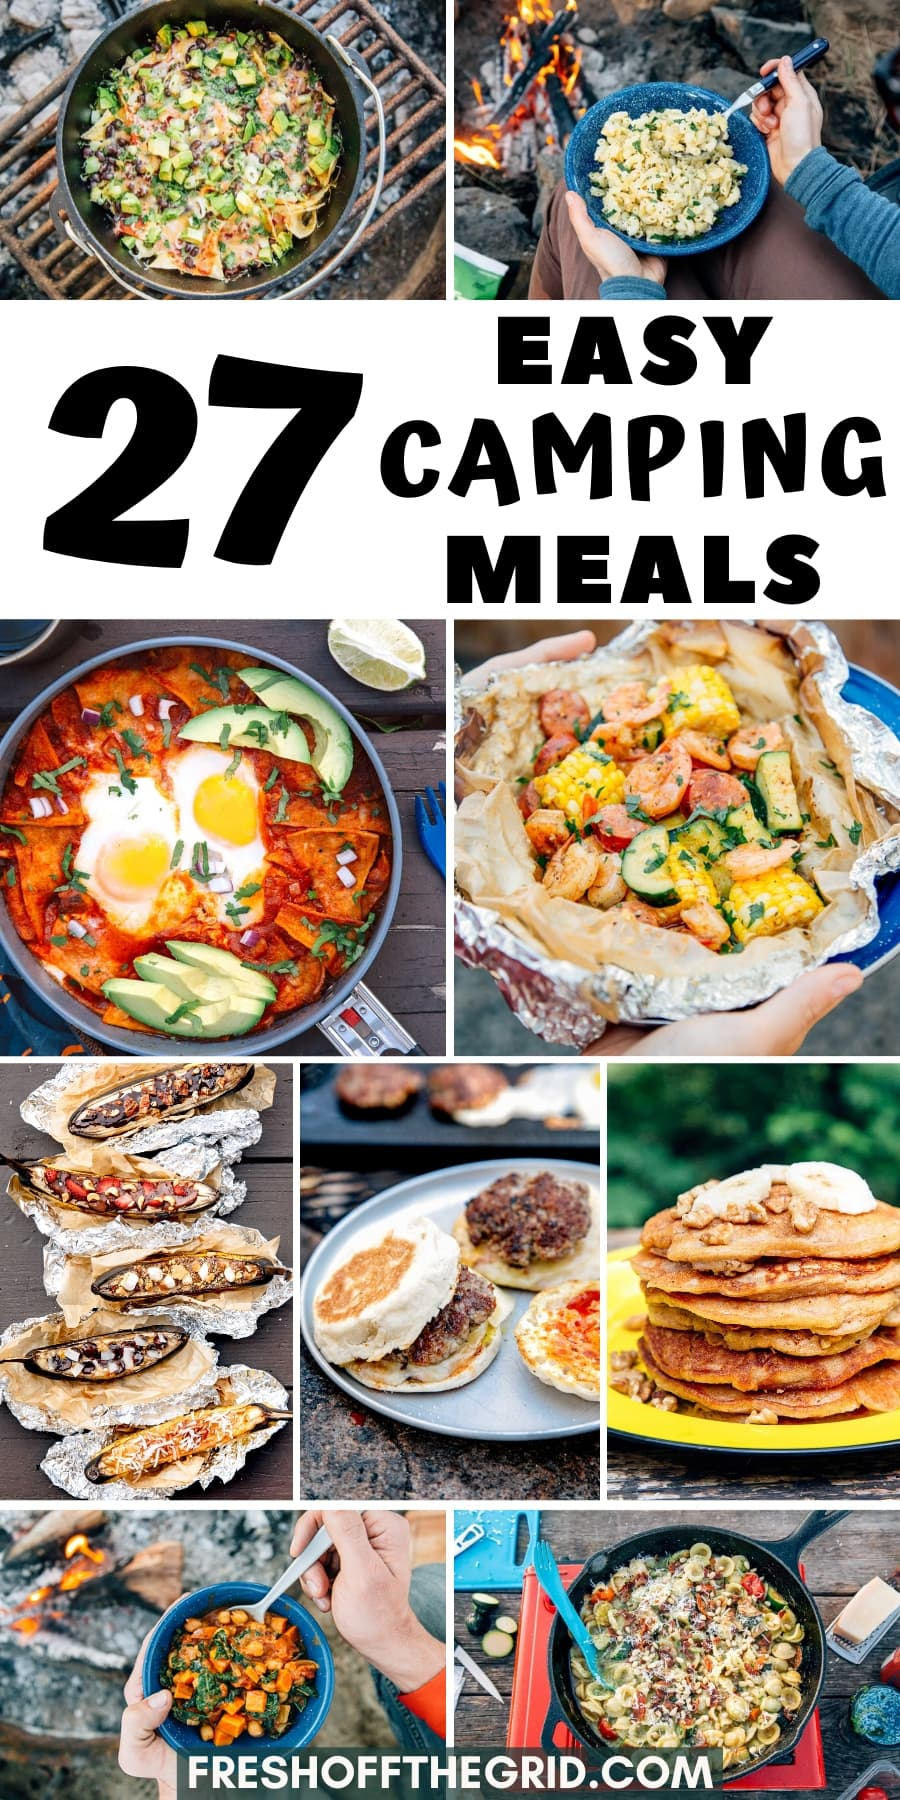 Looking for some quick & easy camping meal ideas to make on your next camping trip? Something that won't be a ton of work, but still taste delicious? Well, then this list is for you!  via @freshoffthegrid